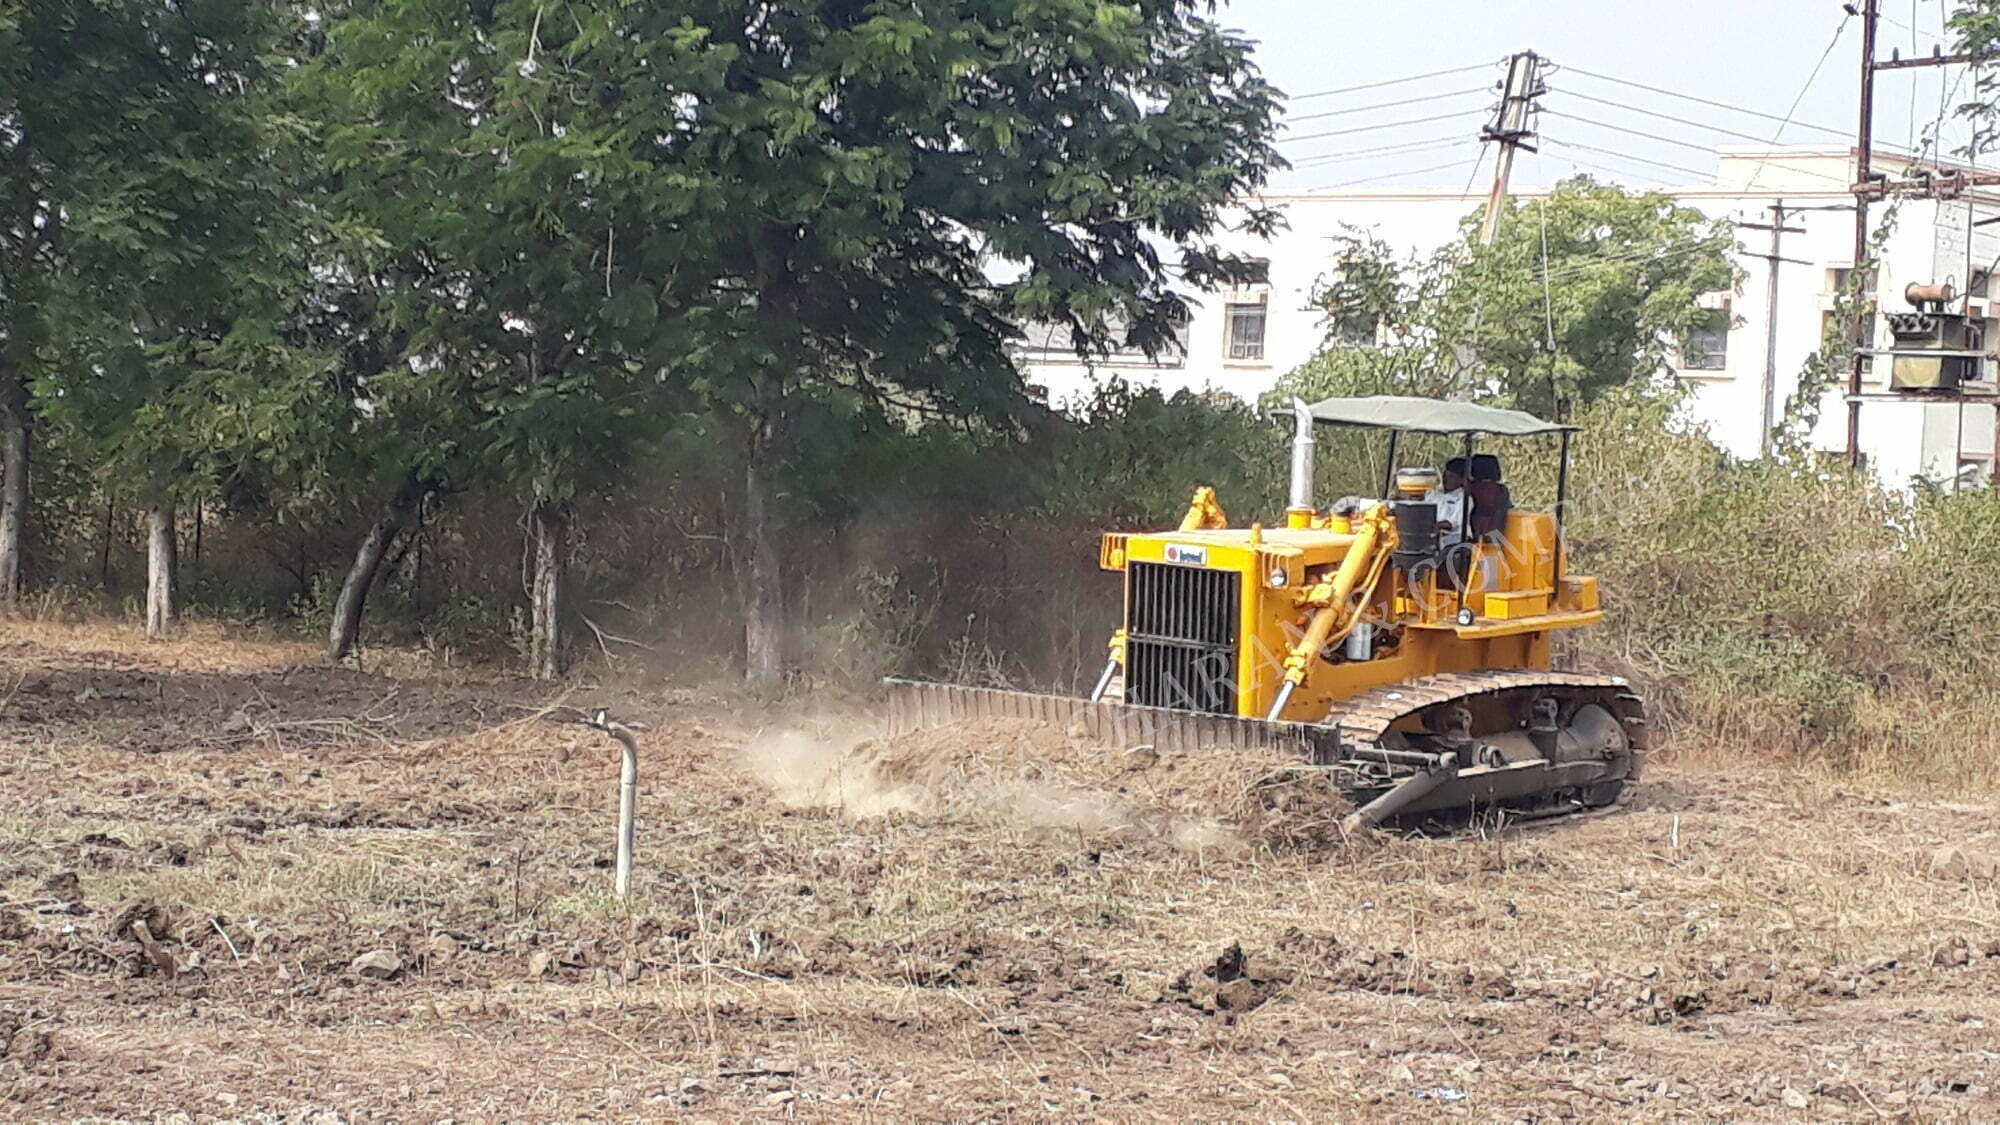 BD80 bulldozer working for land clearing